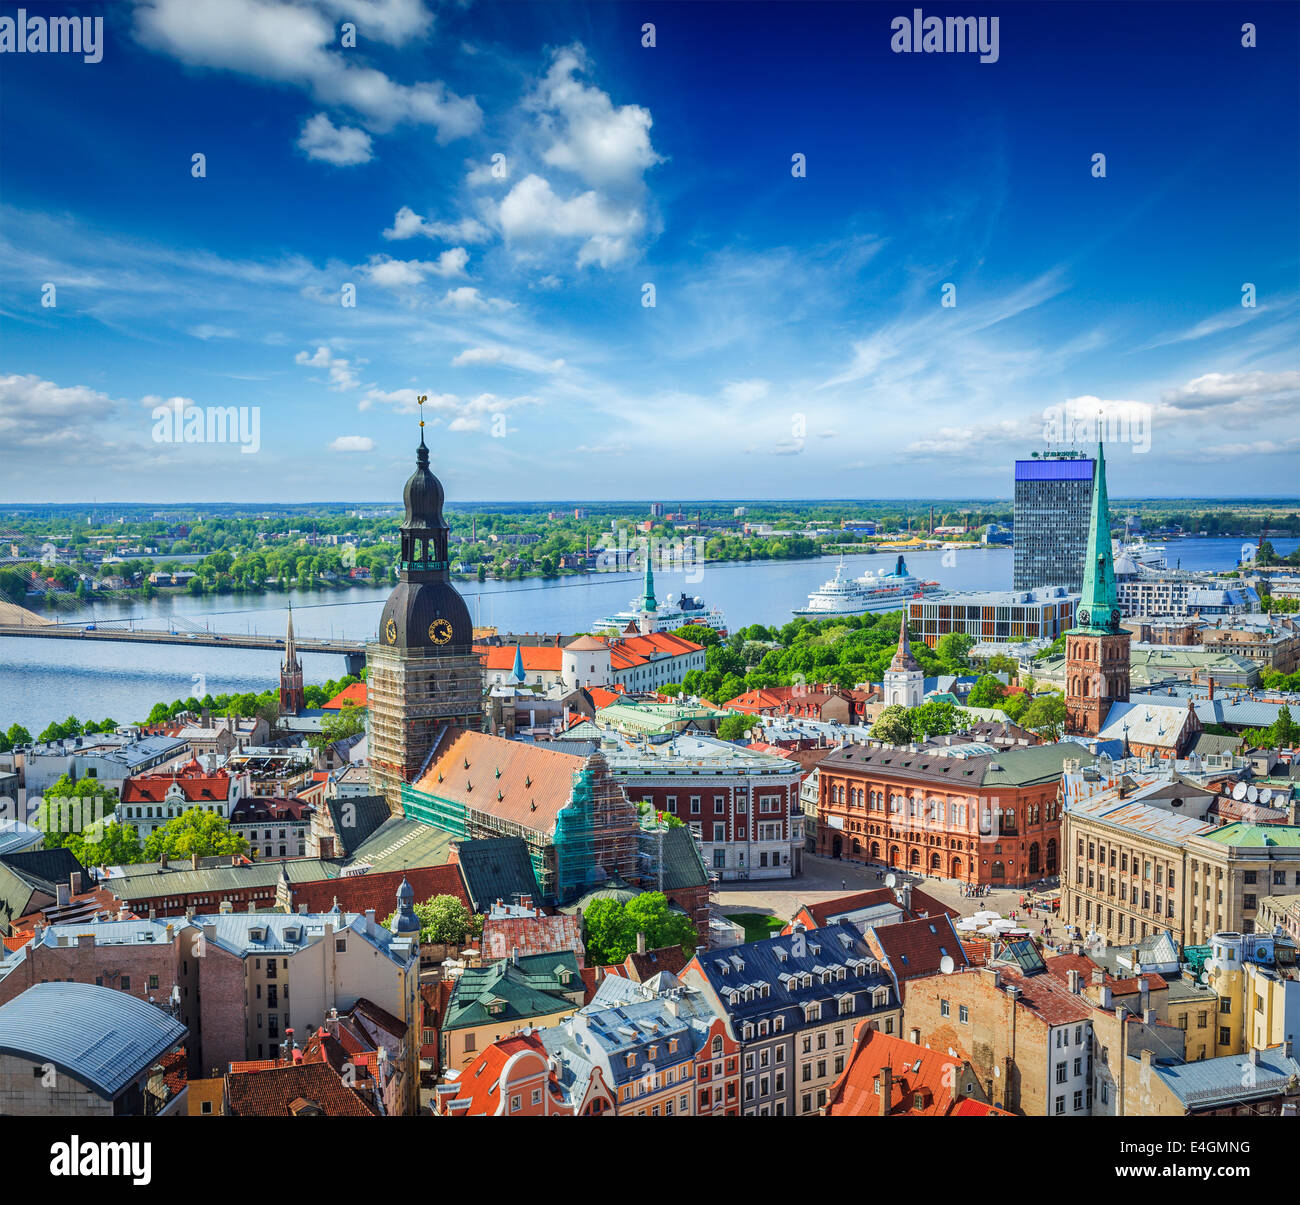 Aerial view of Riga center from St. Peter's Church, Riga, Latvia - Stock Image